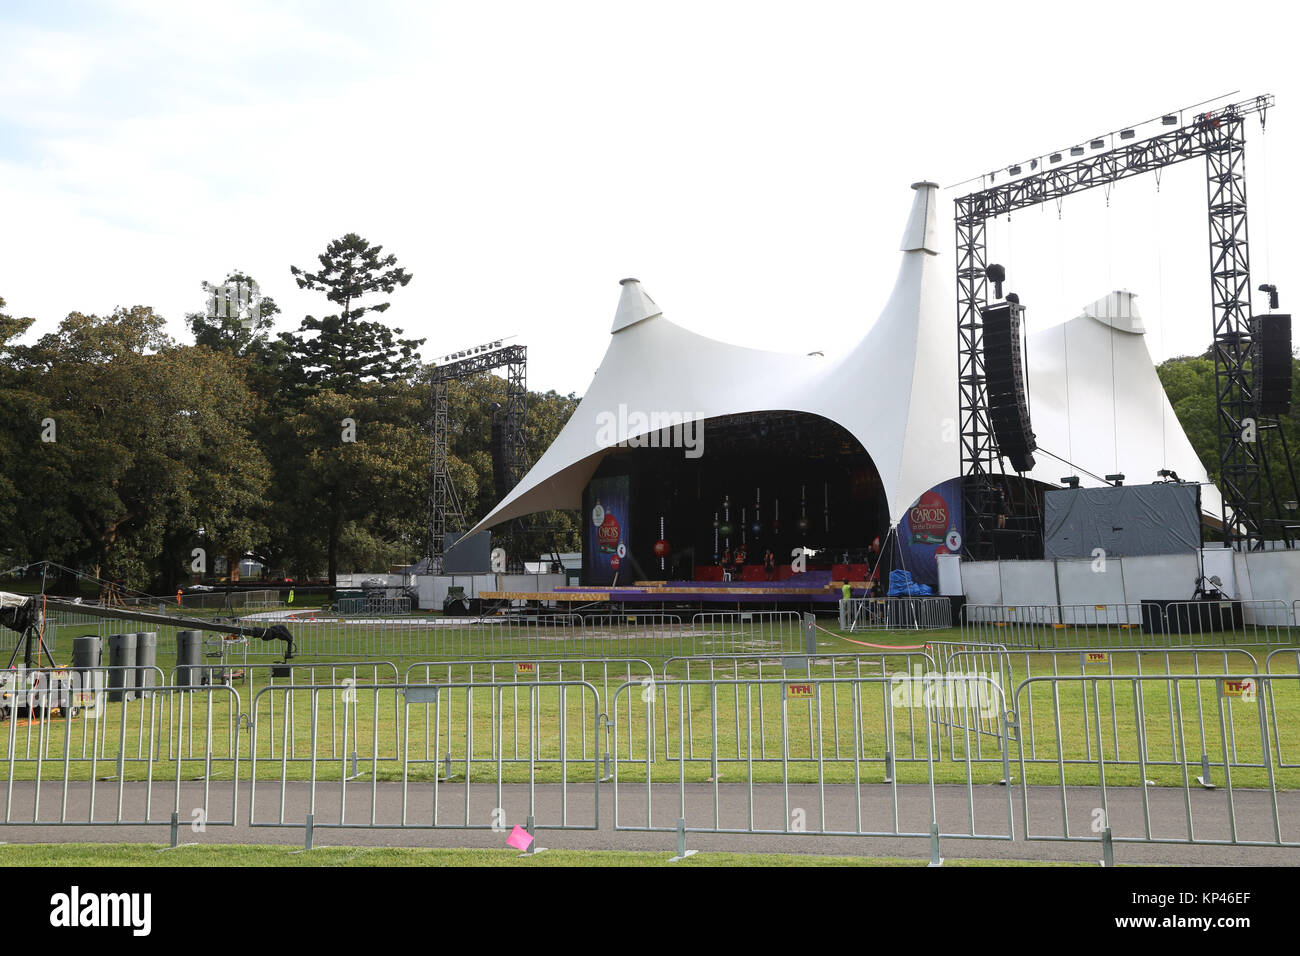 Carols In The Domain Stockfotos & Carols In The Domain Bilder - Alamy